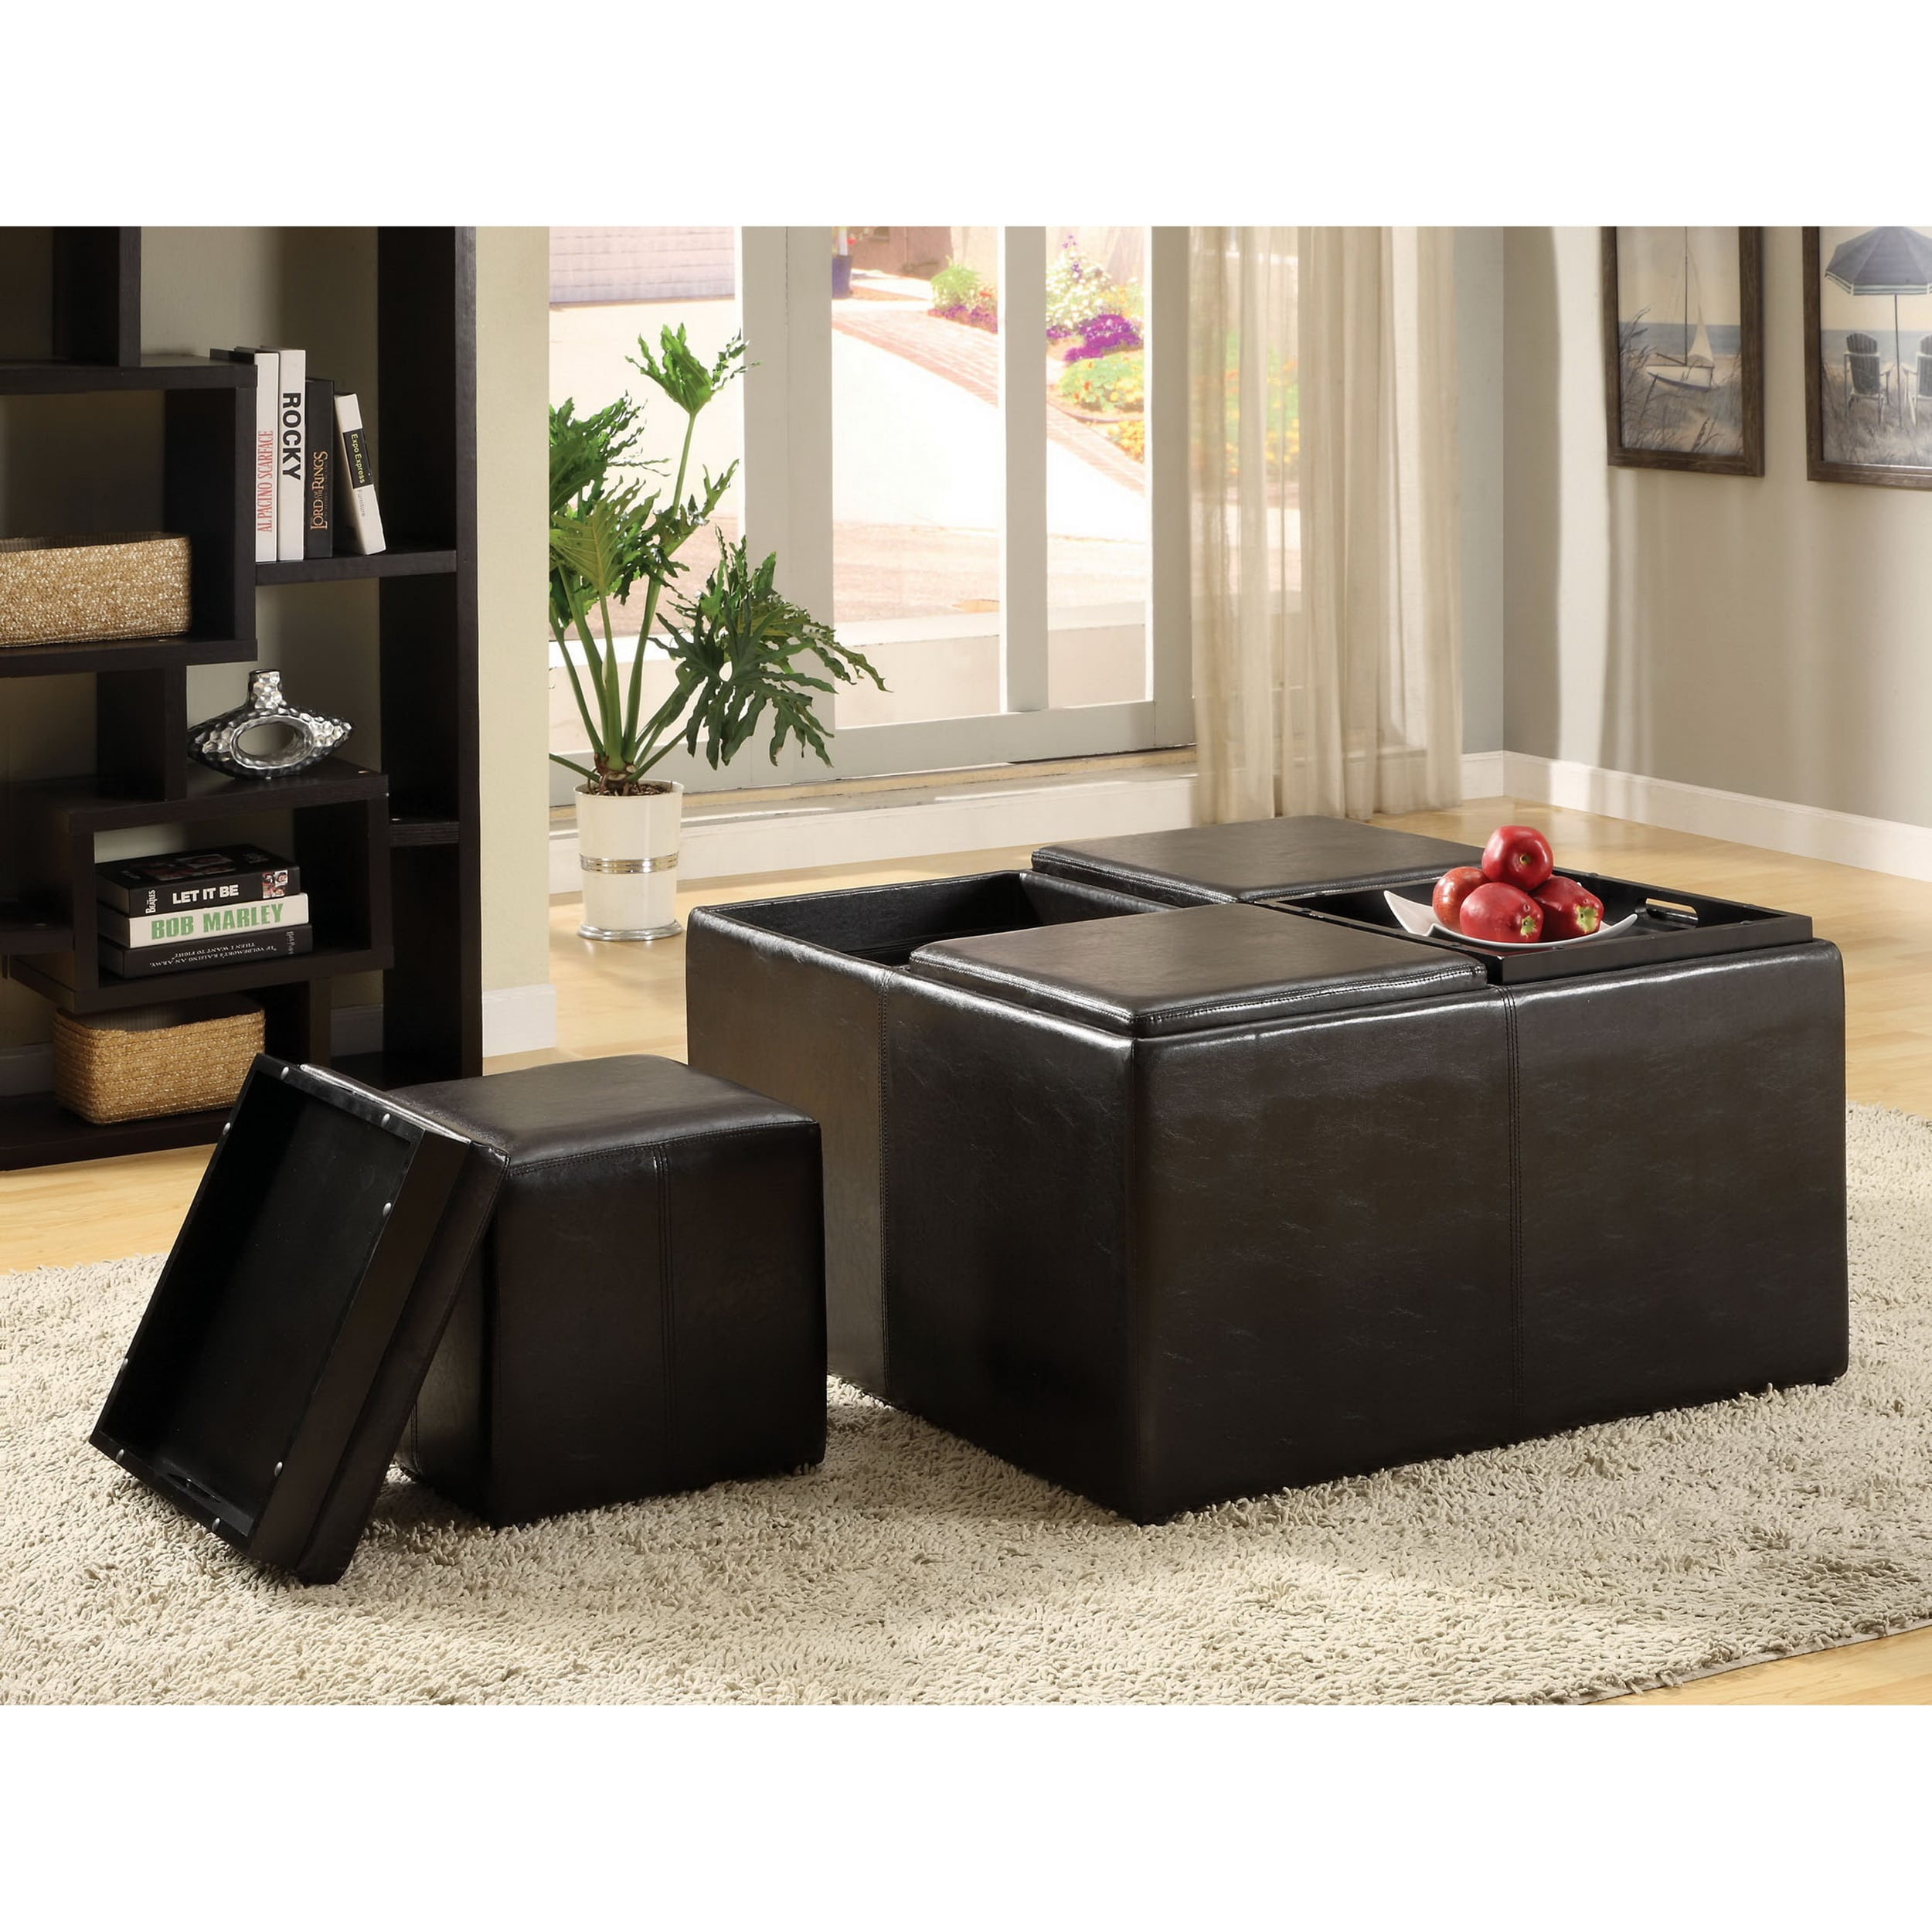 Shop Furniture Of America Miller Storage Ottoman With Four Nesting Stools  And Serving Trays   On Sale   Free Shipping Today   Overstock.com   6545997